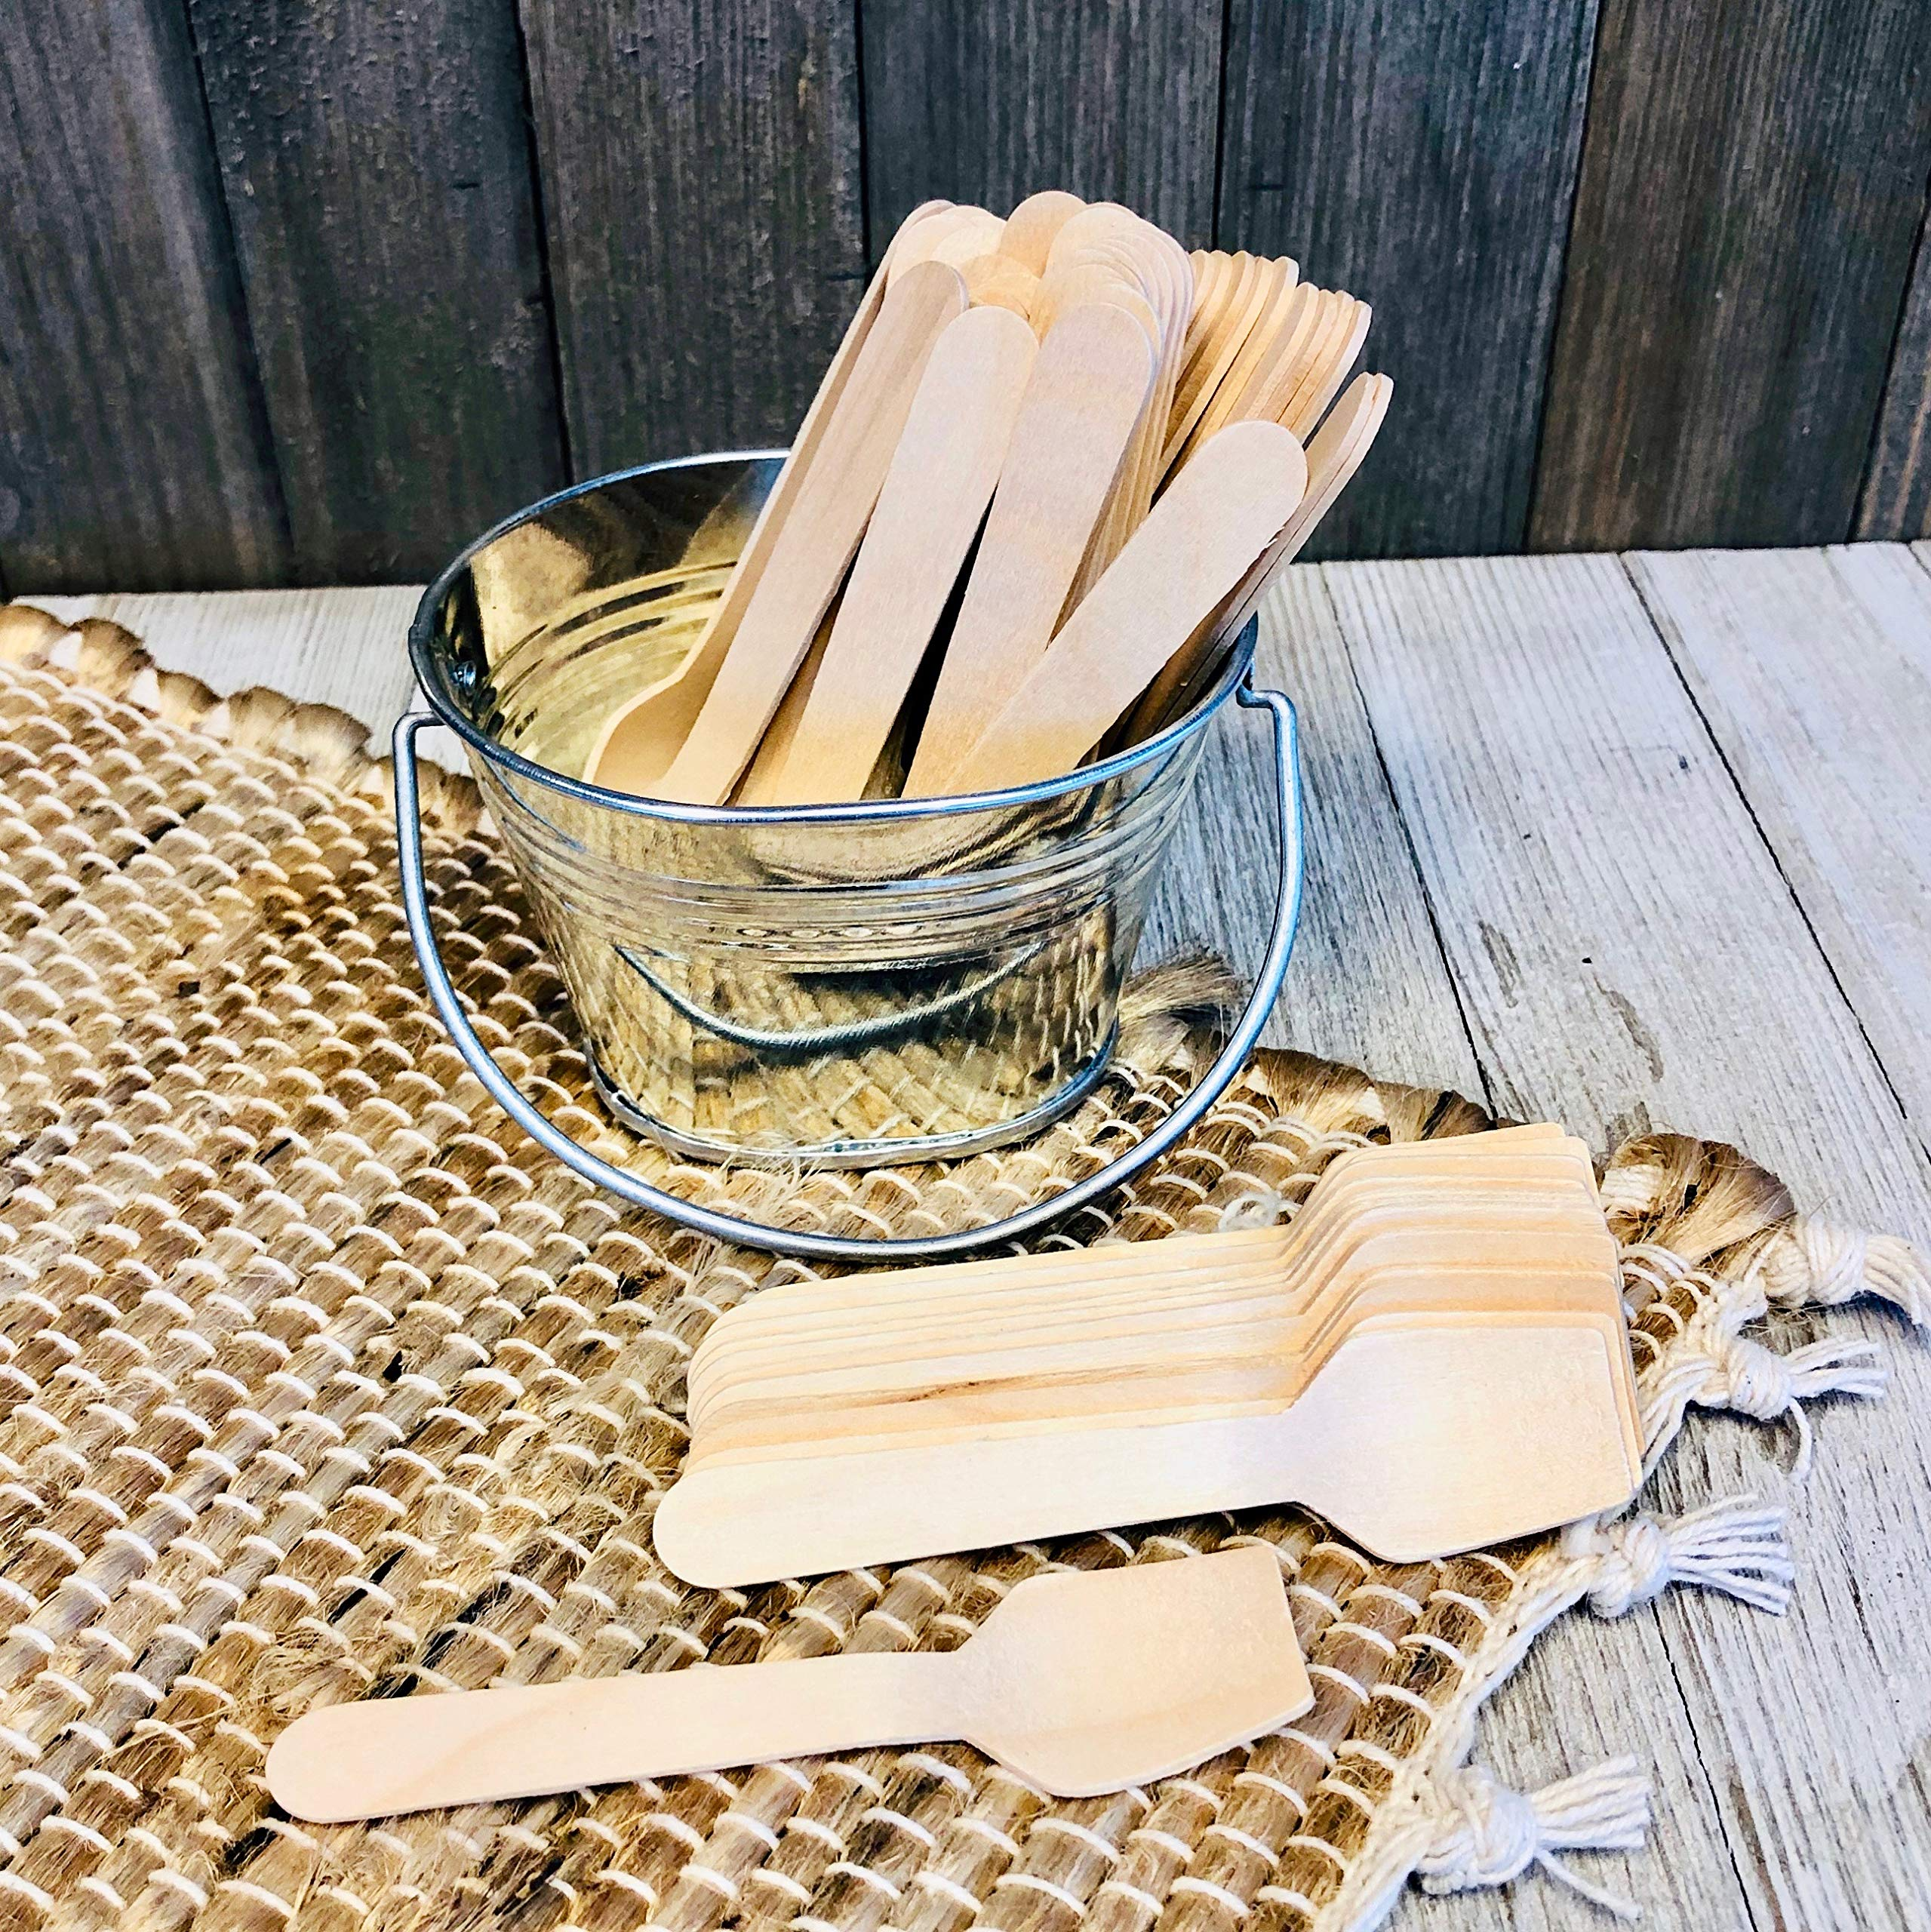 Bulk Mini Wooden Spoons -Eco Friendly Disposable Biodegradable - 3.5 Inches - 300 Pack Outside the Box Papers Brand by Outside the Box Papers